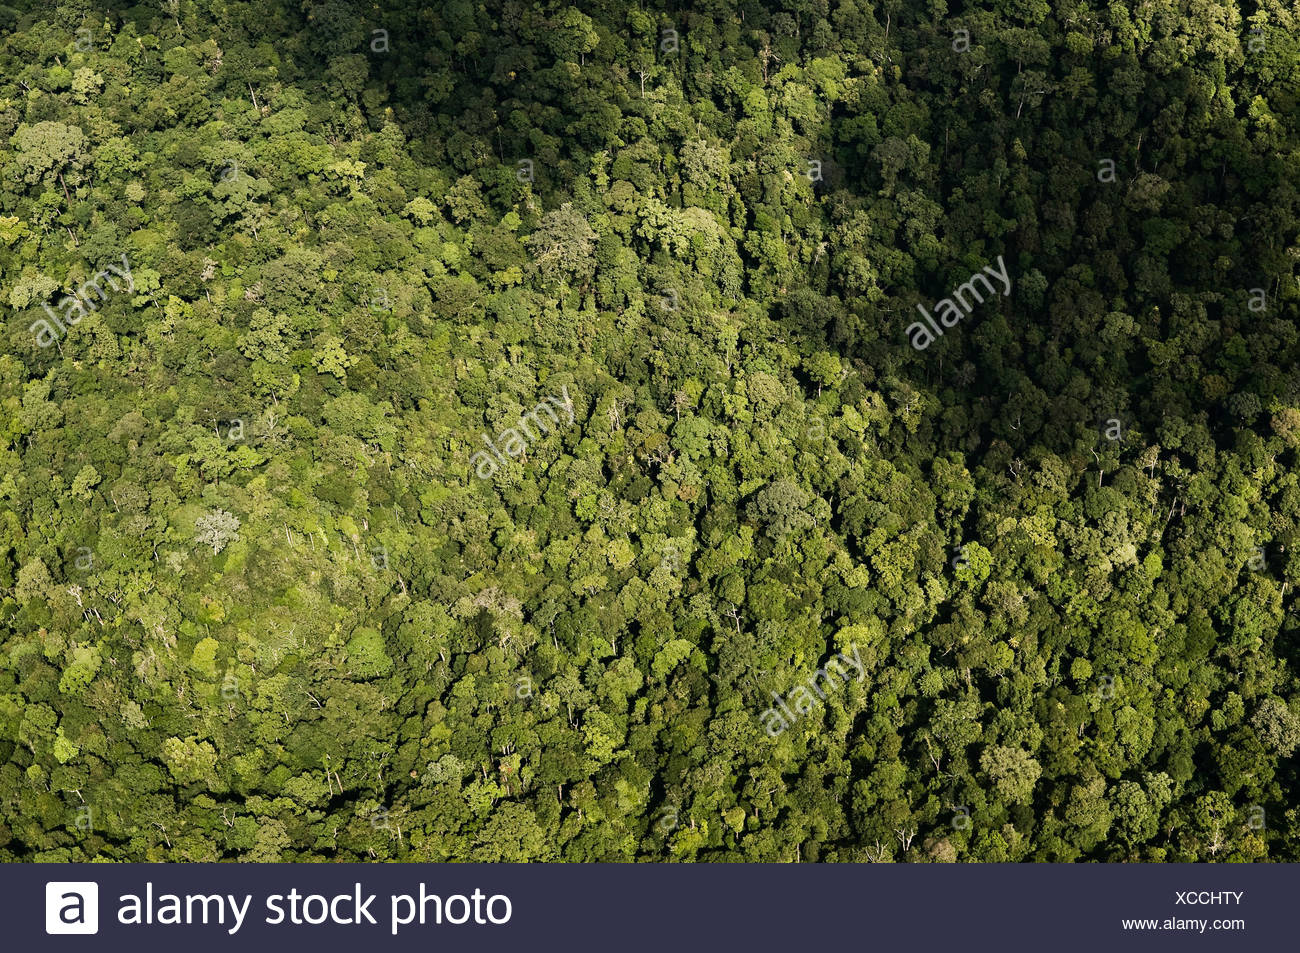 jungle from above - Stock Image